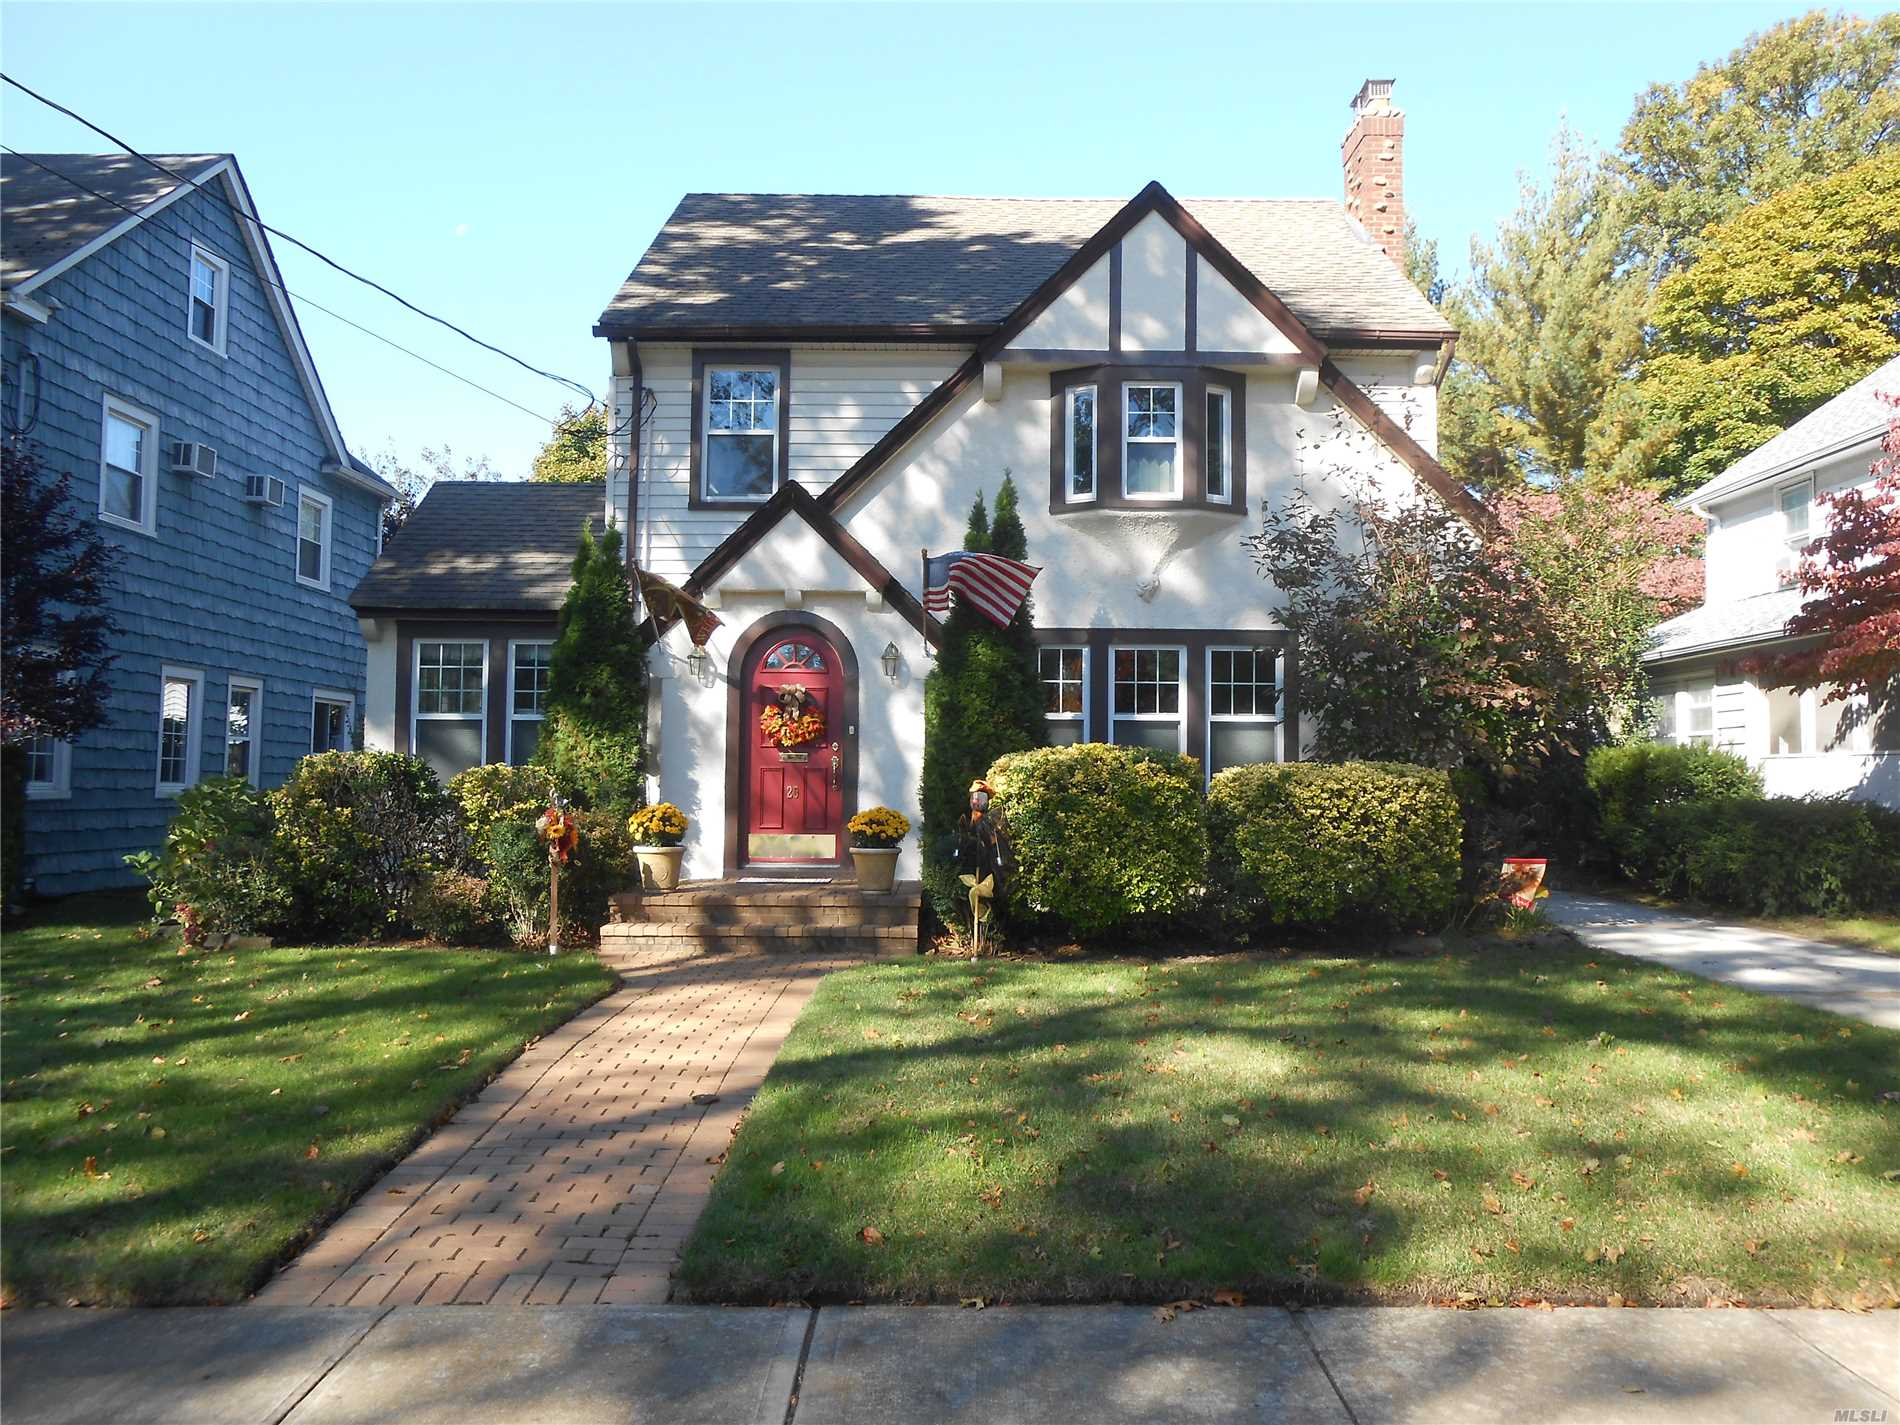 Price Reduction On This Beautiful Tudor Home On A Tree Lined Cul De Sac. Award Winning Rvc School District. Lrge Eik & Formal Dining Rm. Hwd Floors. 4 Ductless Ac's, Baseboard Heating On 1st Floor And Working Fireplace. Top Floor Has Bdrm With Full Bath. Full Finished Basement! Great Size Fenced In Yard With Deck. 2 Car Detached Garage. With New Assessment And Tax Grievance, Property Taxes Will Decrease! Expecting A 13% - 16% Reduction. Move Right In And Make This Your New Home Today!